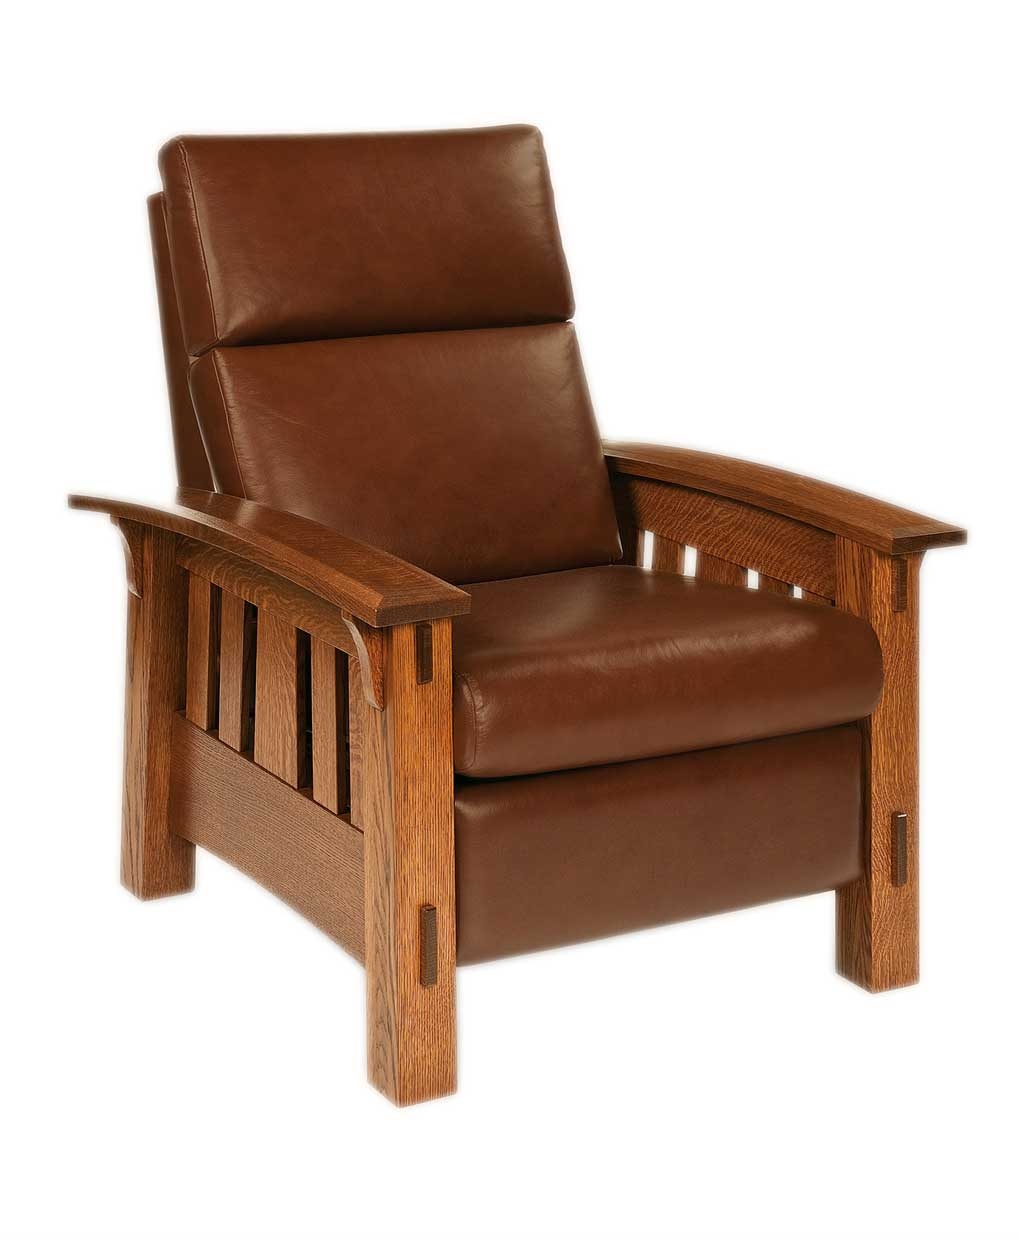 Mccoy recliner amish direct furniture for Chair chair chair